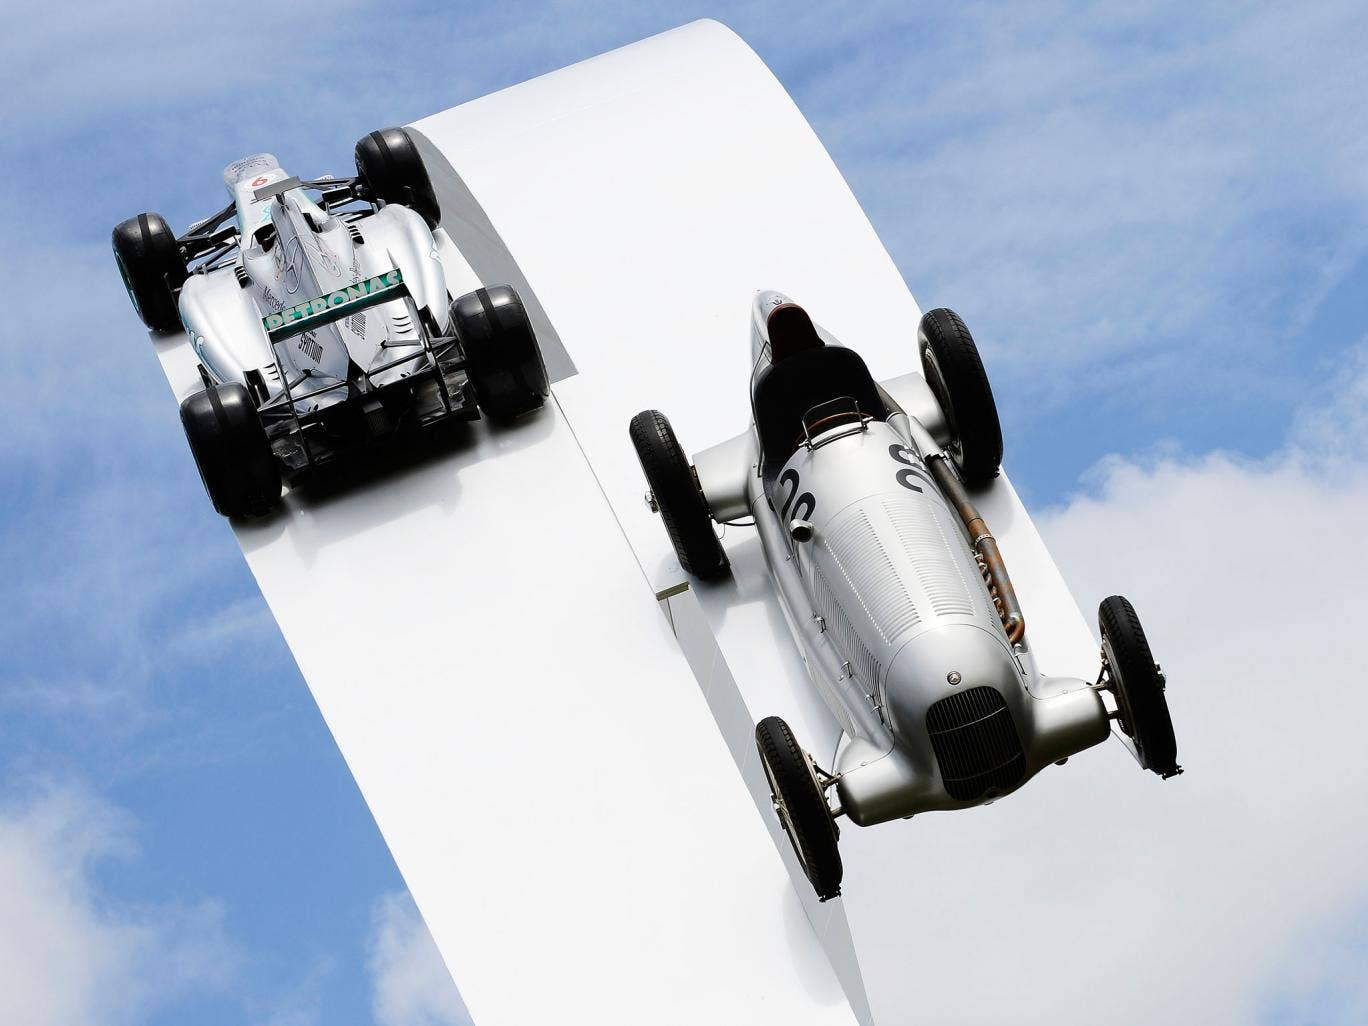 The Mercedes sculpture at the Goodwood Festival of Speed